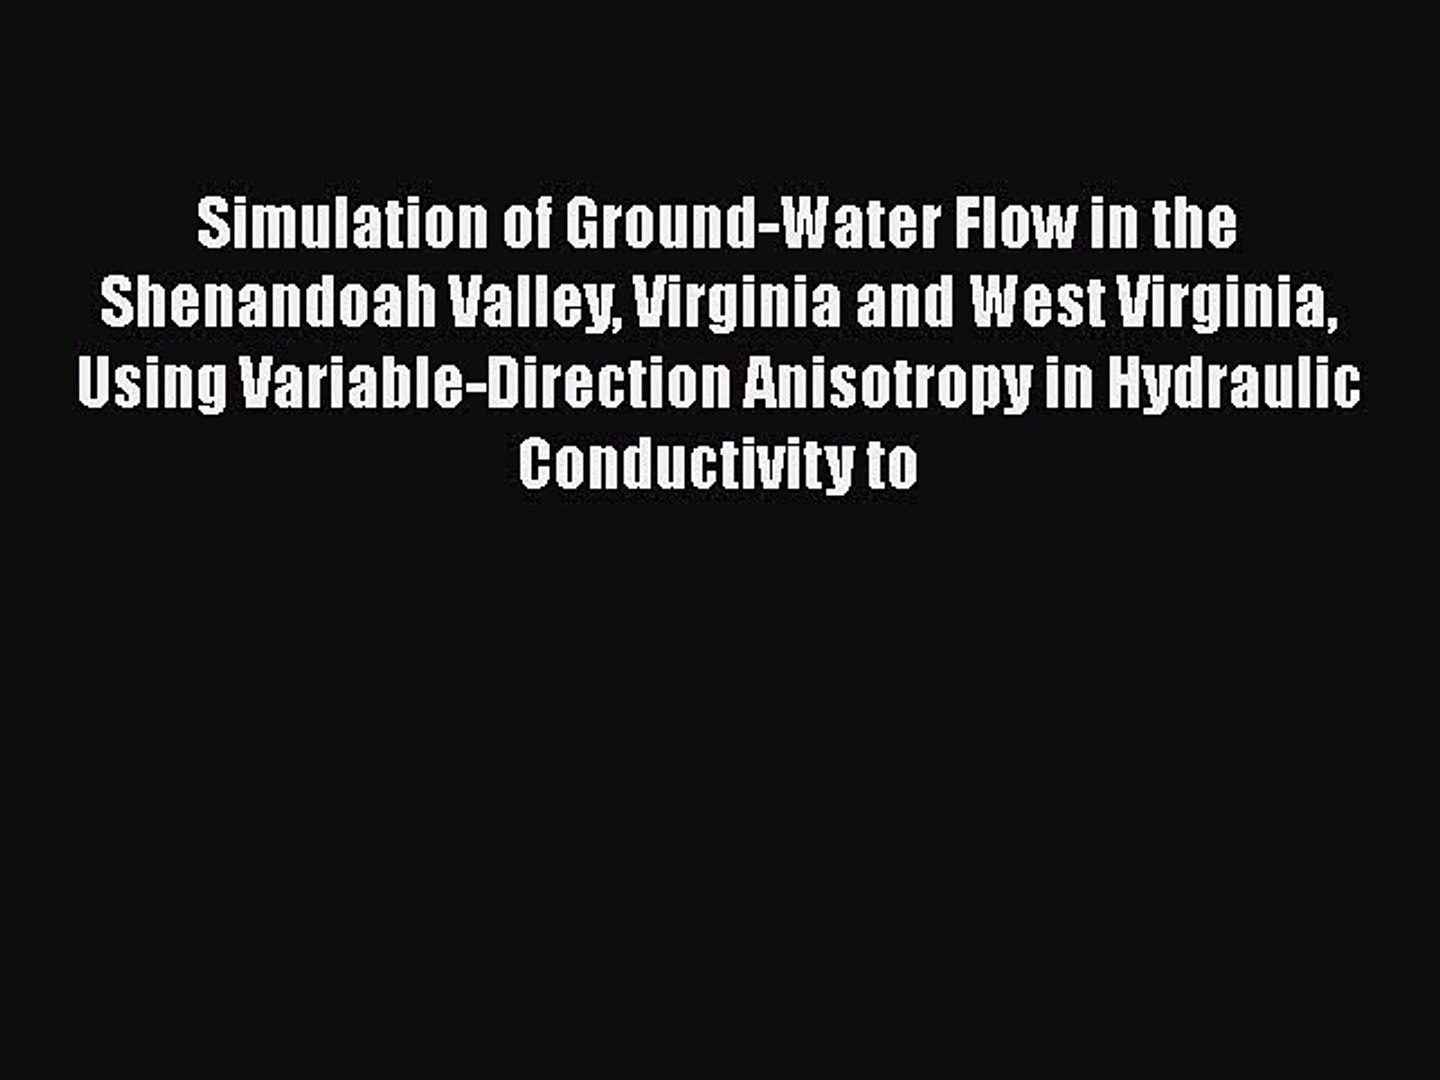 [Read Book] Simulation of Ground-Water Flow in the Shenandoah Valley Virginia and West Virginia